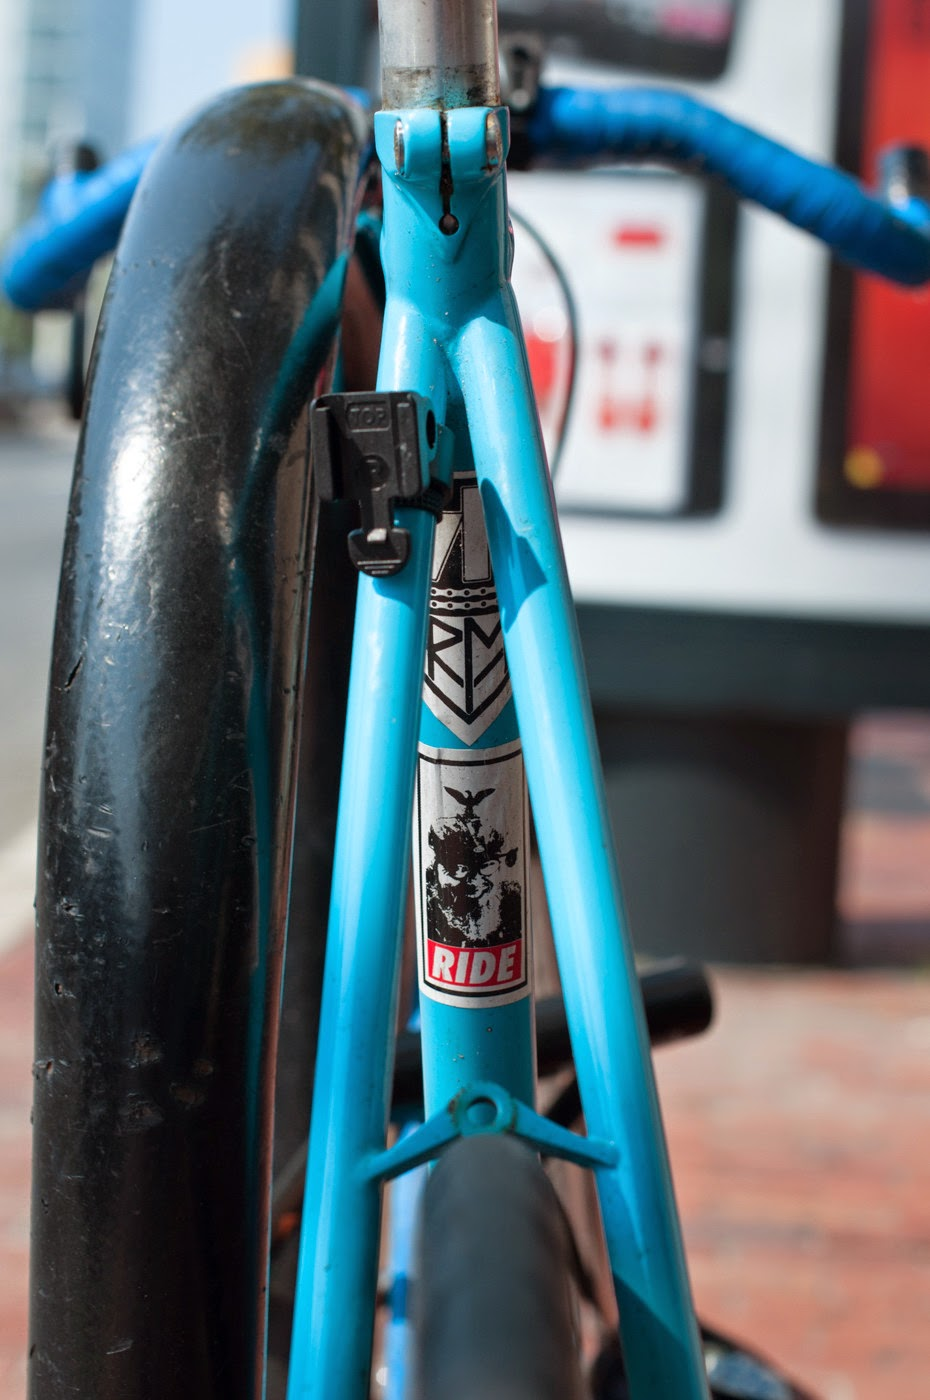 Fixie, fixed speed, bicycle, boston, USA, custom, customised, blue, tim Macauley, the biketorialist, shimano, frame, 3t, ritchey, tiagra , decal, sticker, ride